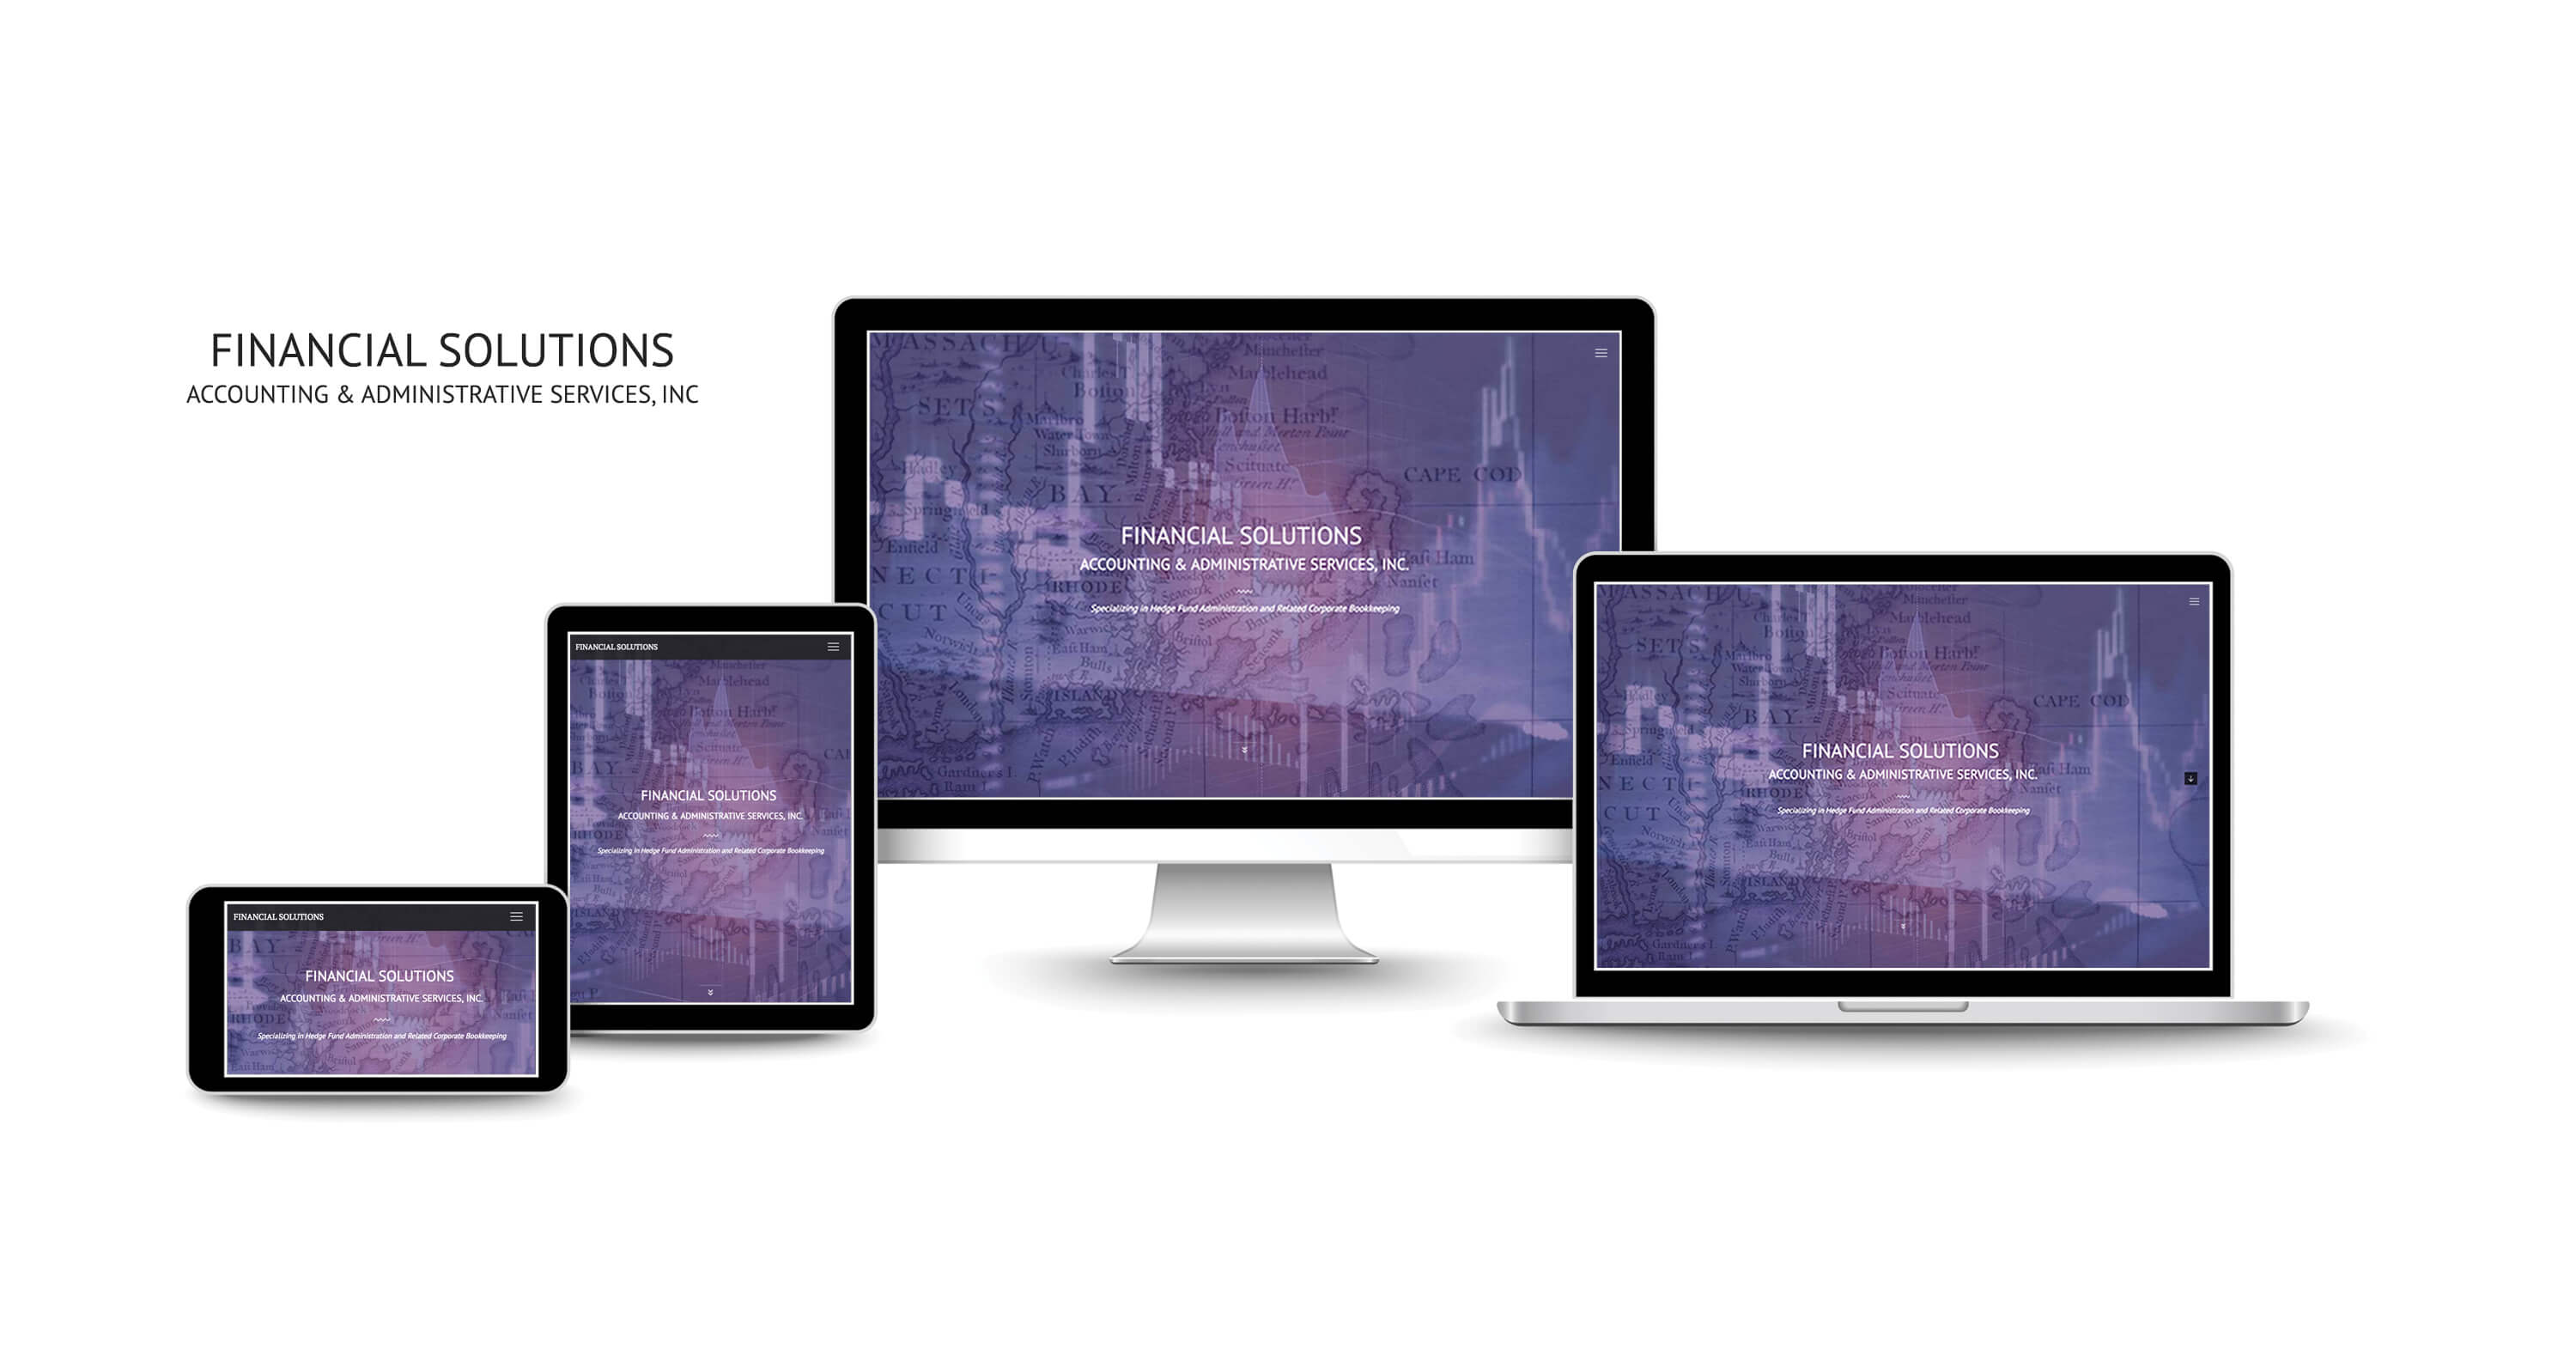 financial accounting website design services New York